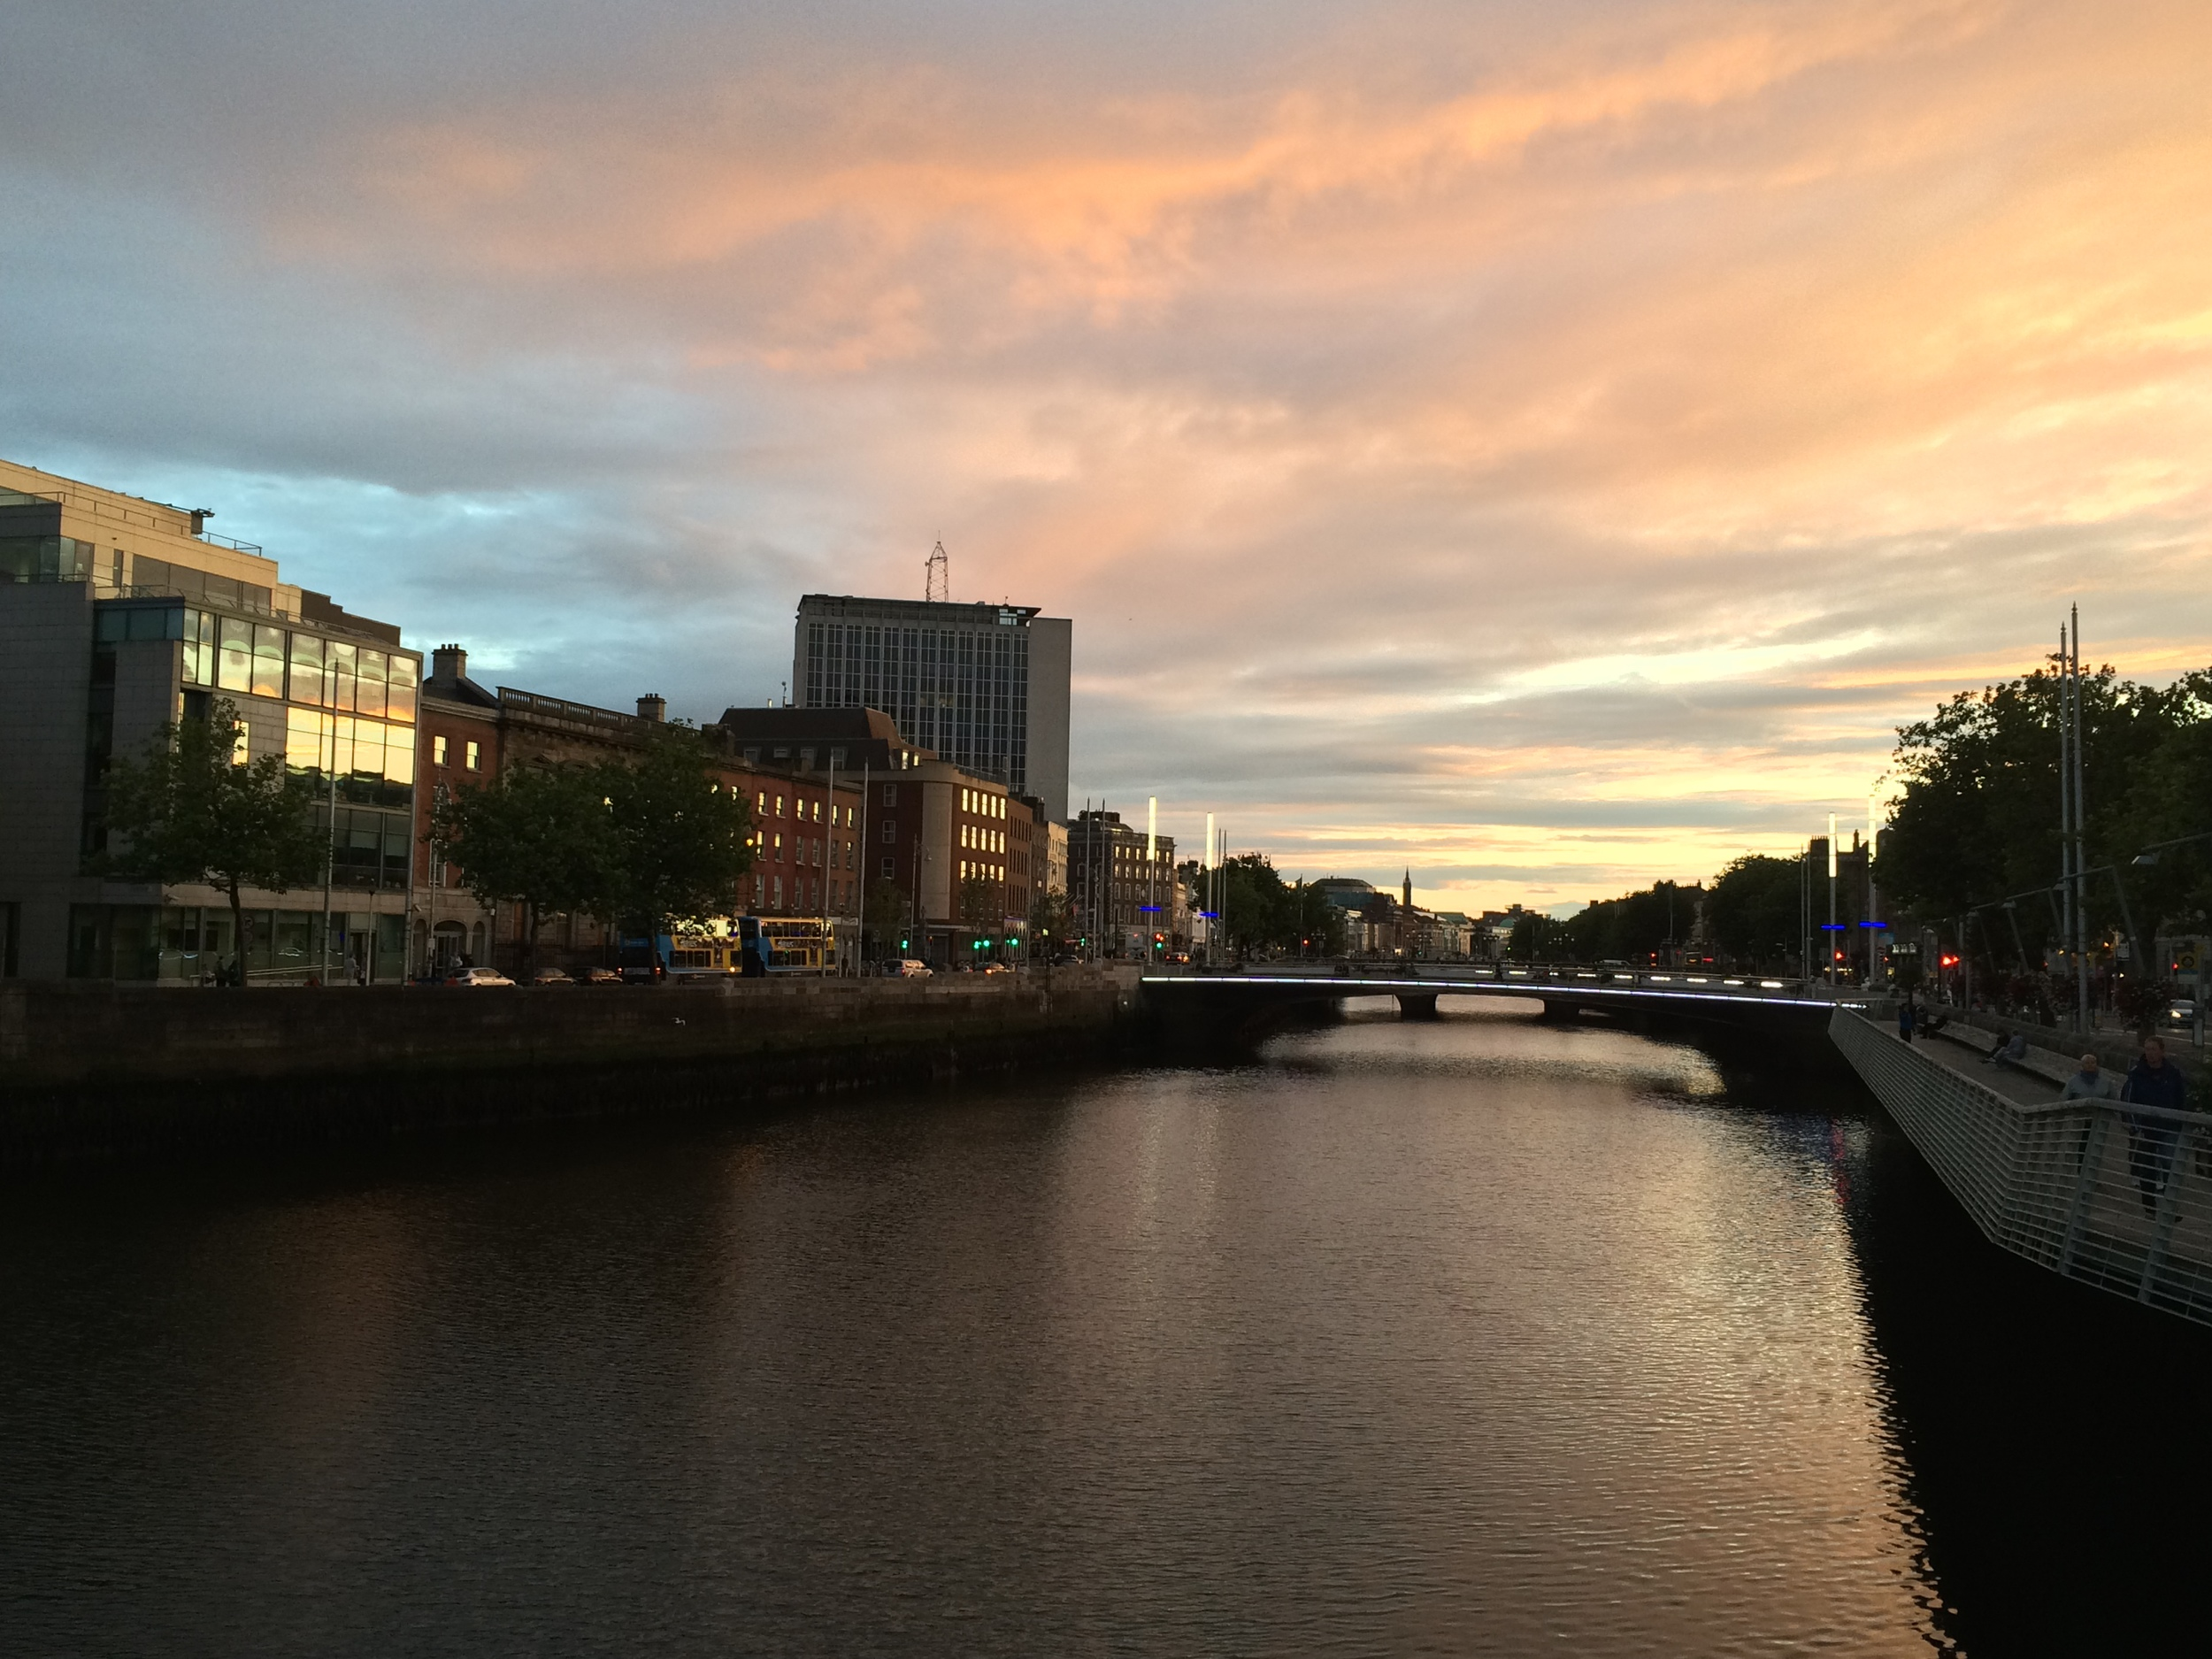 Coming home to Dublin once again. (August 2014)